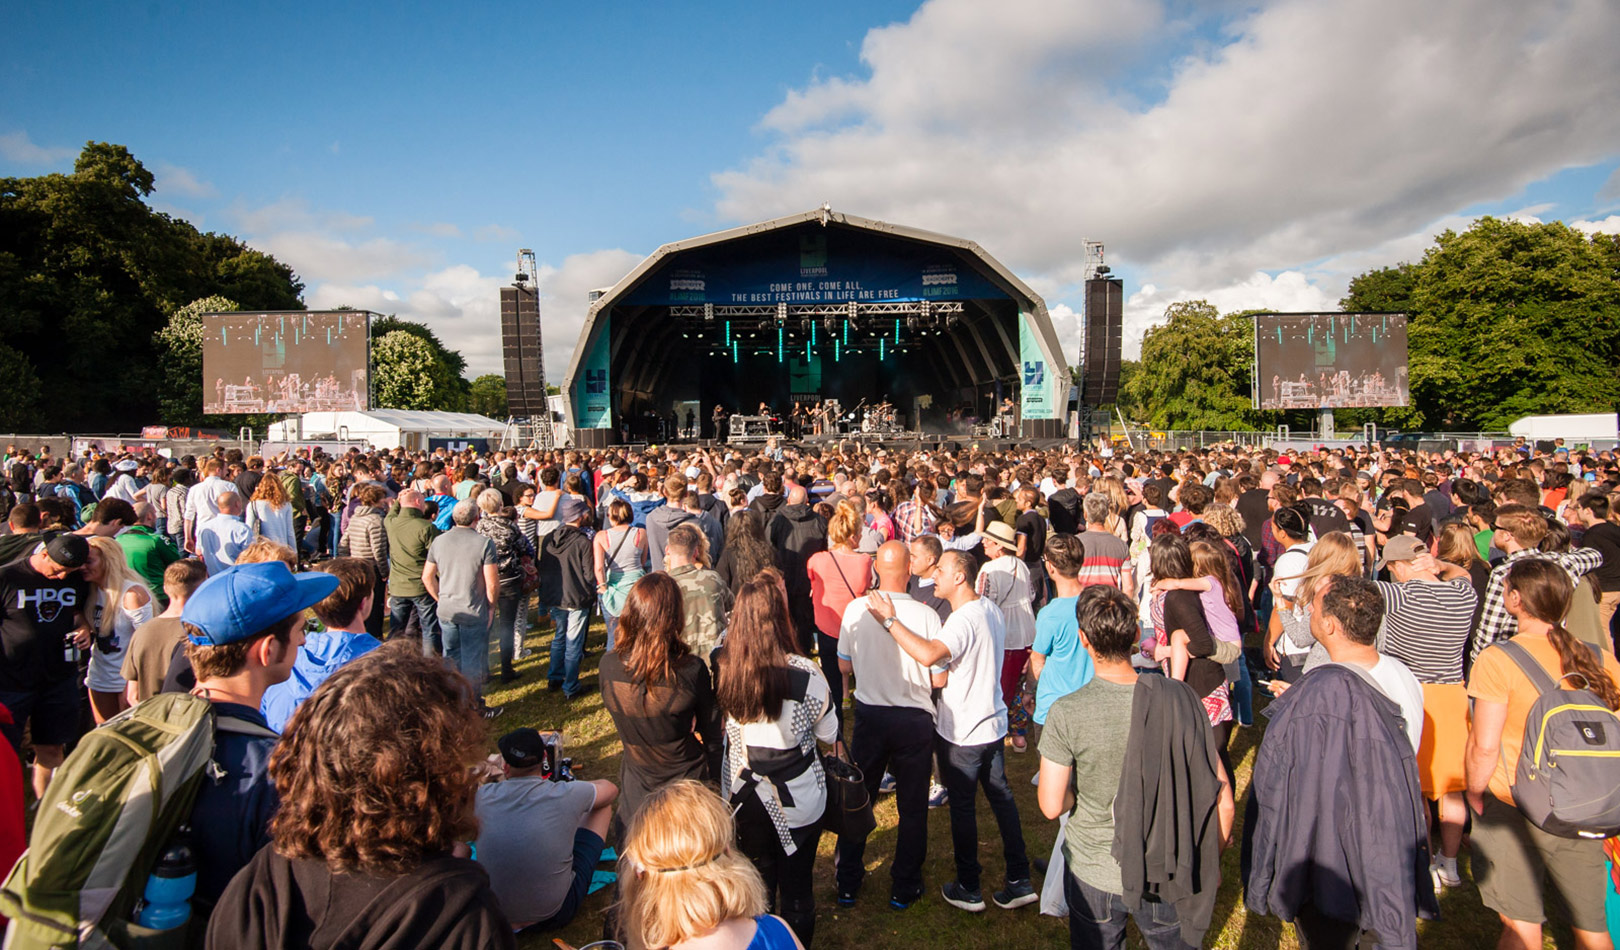 Audience and stage at the LIMF2016 Liverpool festival on a Pete Carr concert.